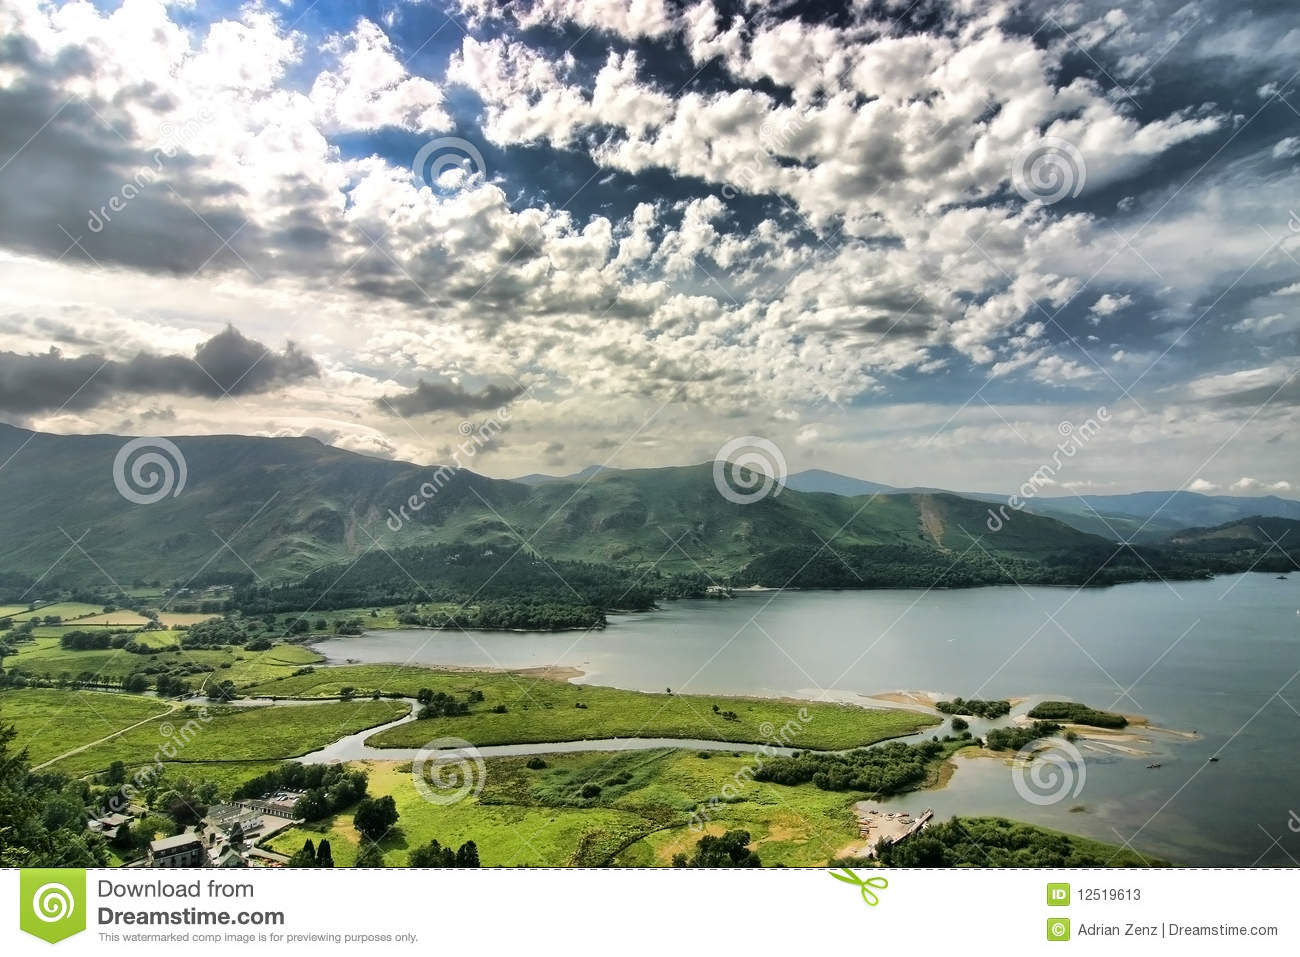 scenery lake district england 12519613